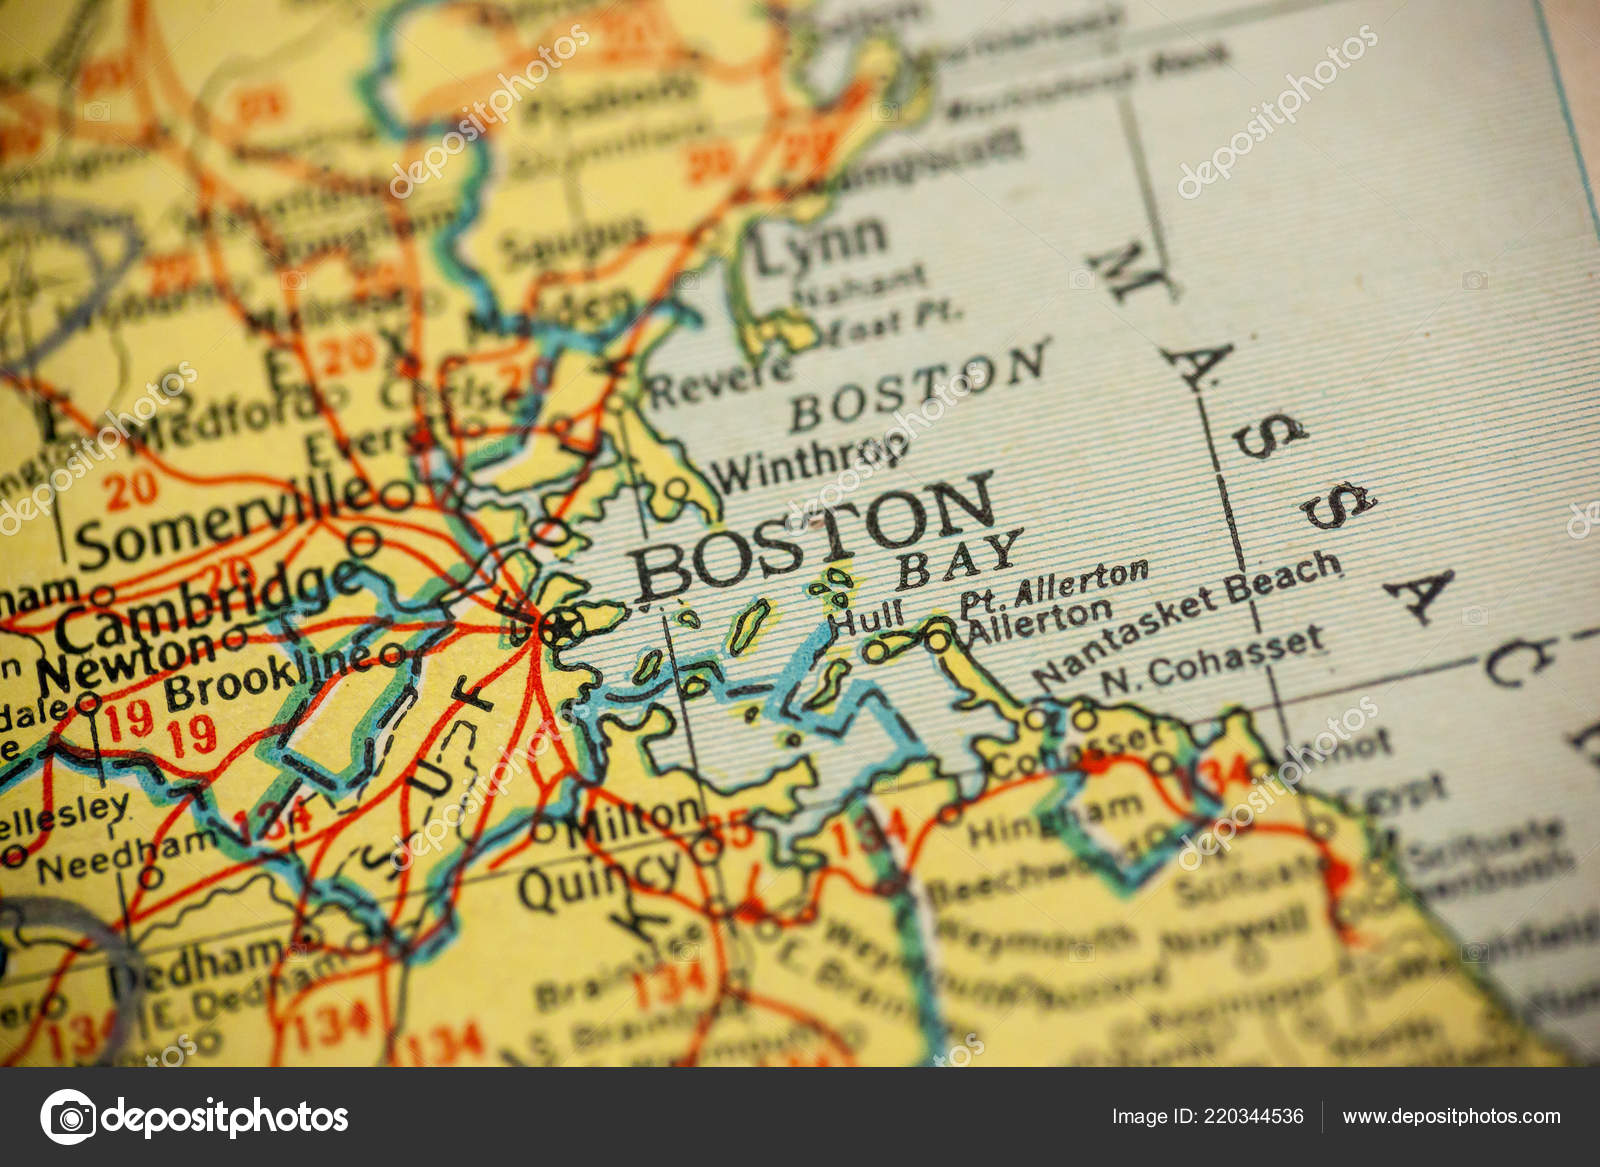 Picture of: Pictures Massachusetts Colony Boston Massachusetts Center Focus Old Map Stock Photo C Luvemak 220344536